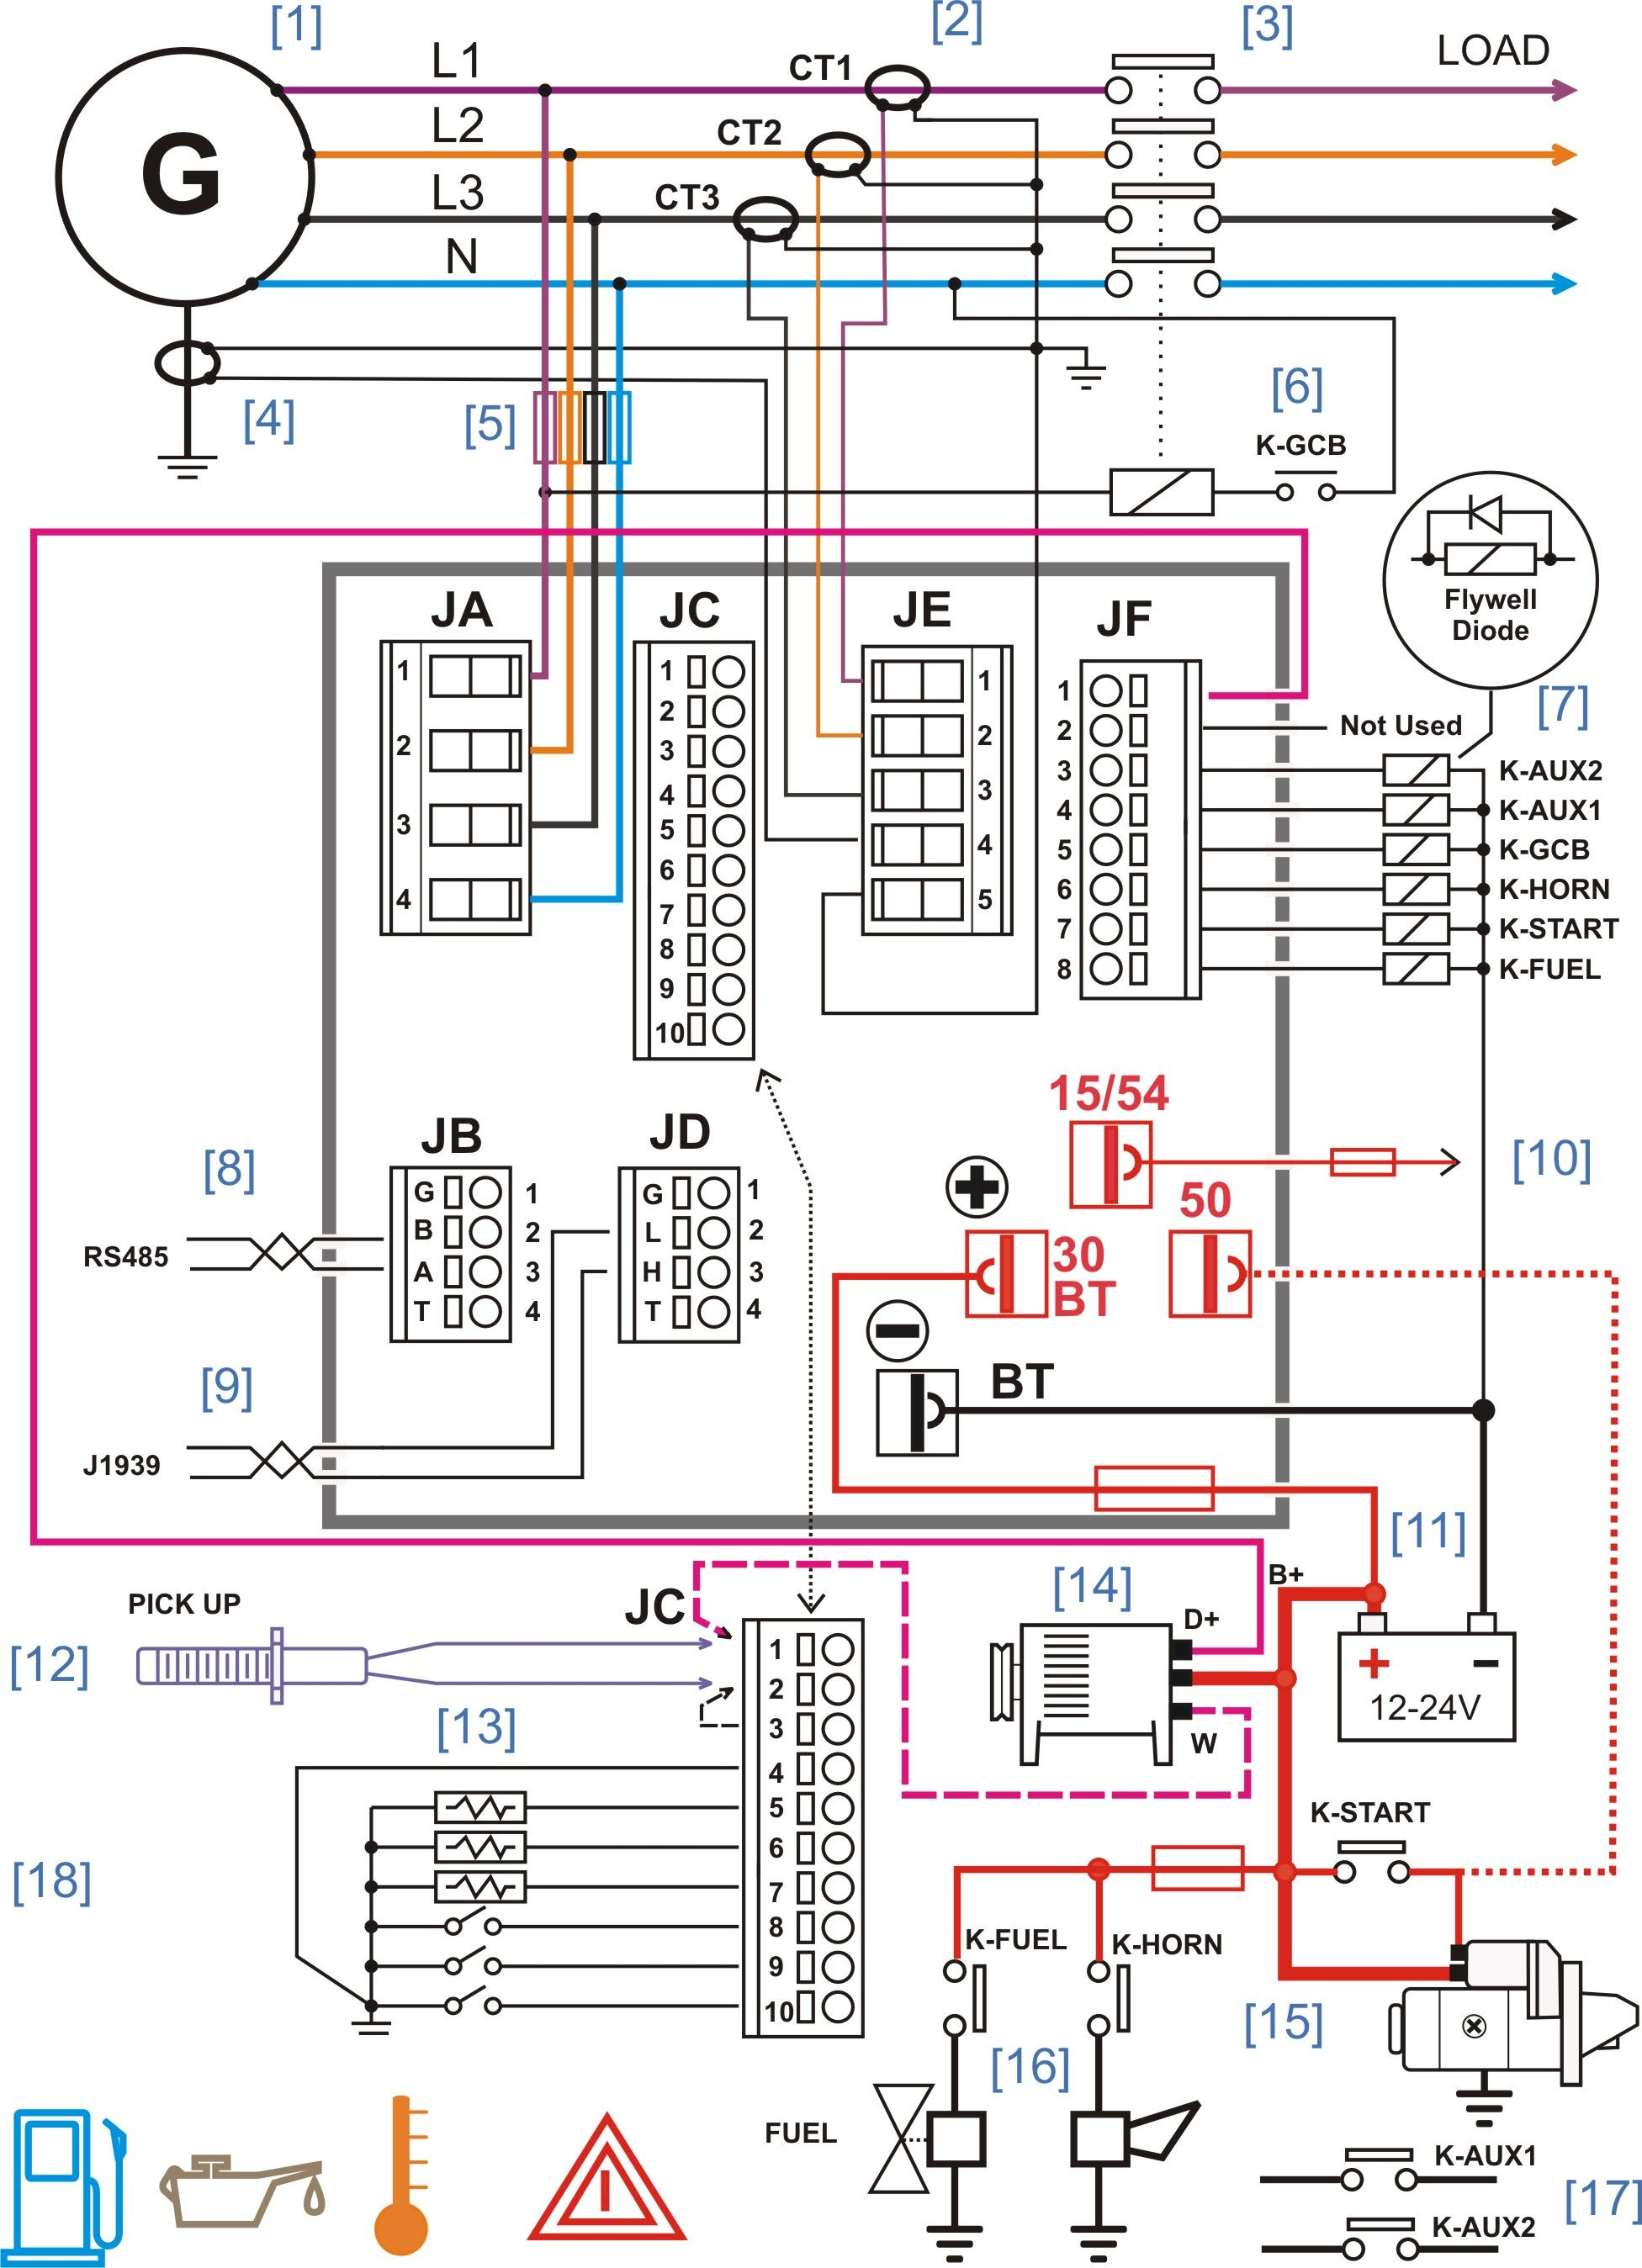 Wiring Diagram Panel Wlc : Diesel generator control panel wiring diagram